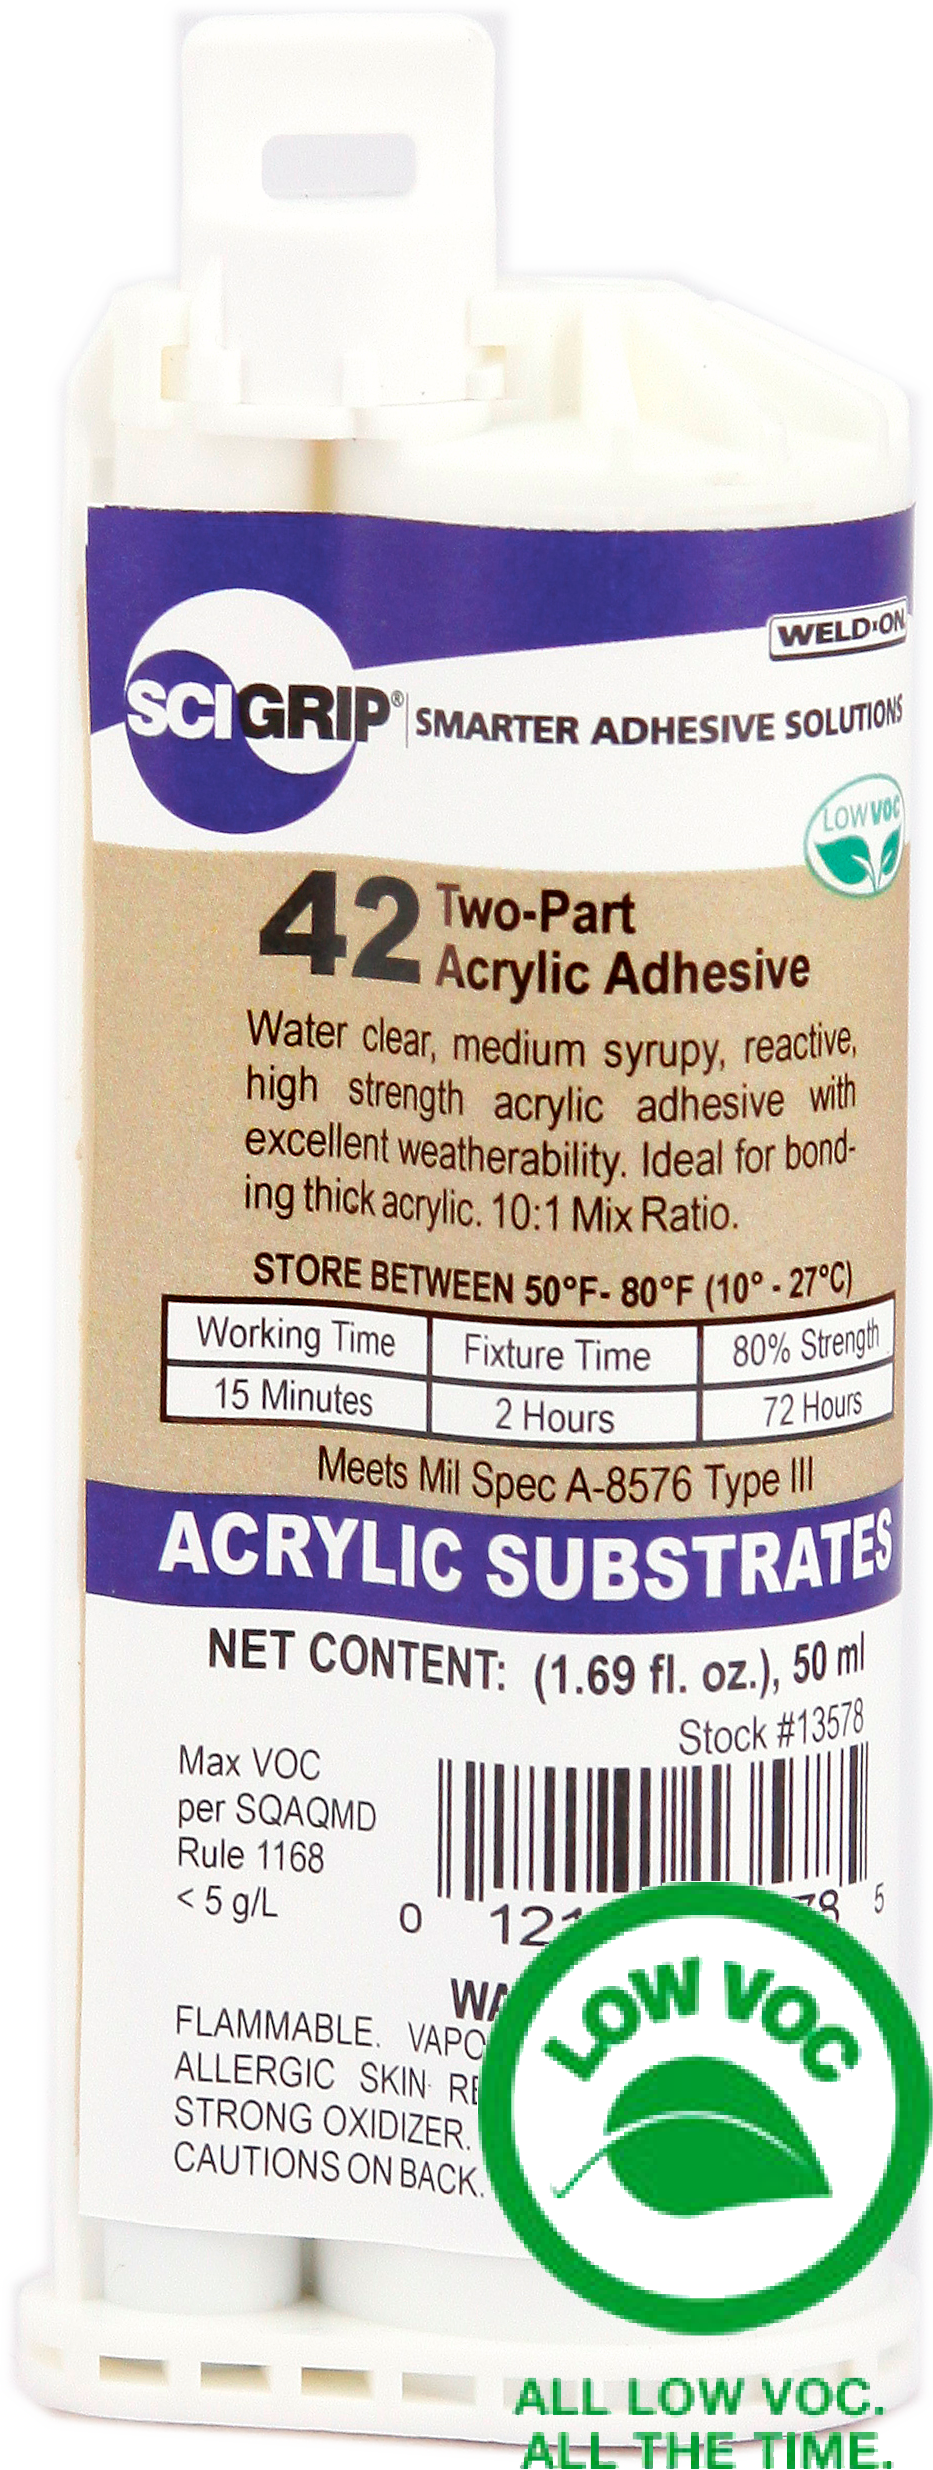 SCIGRIP IPS Weld-On #42 Acrylic Adhesive Glue Cartridge